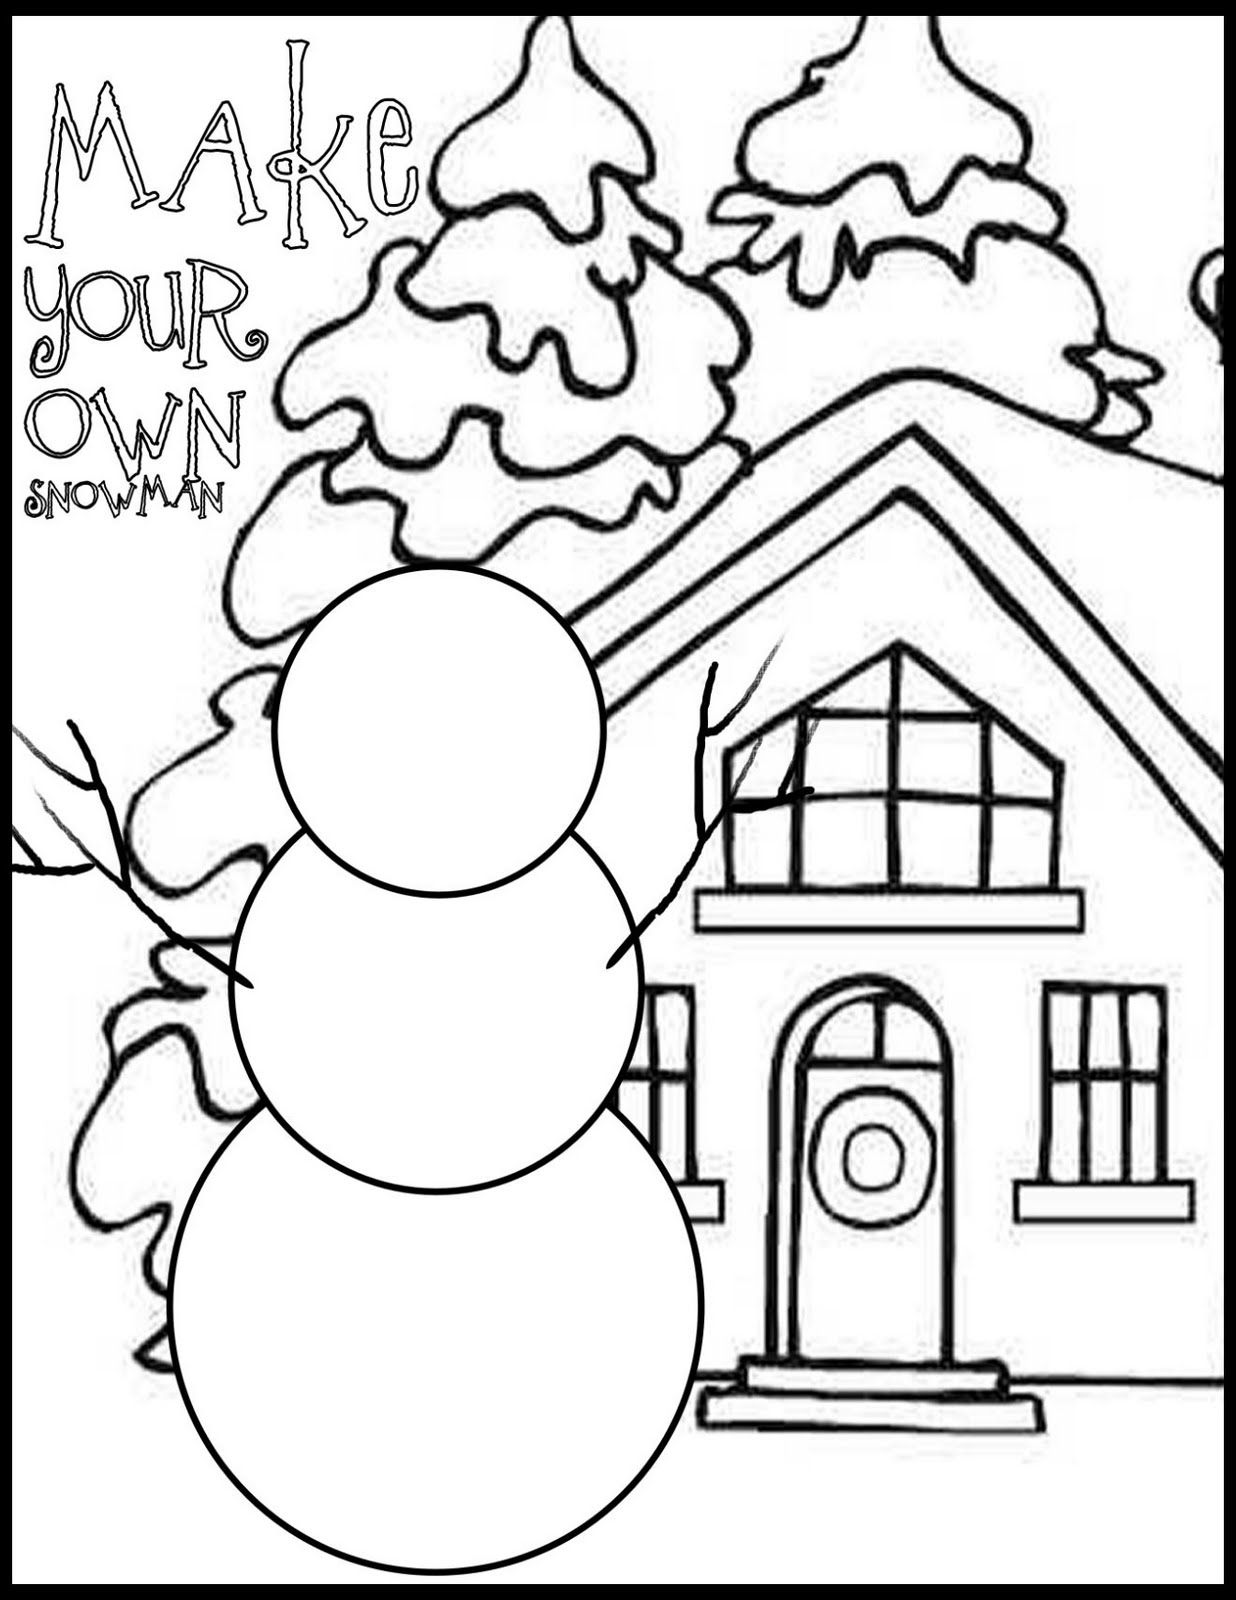 Everyday Mom Ideas Draw Your Own Snowman Coloring Page